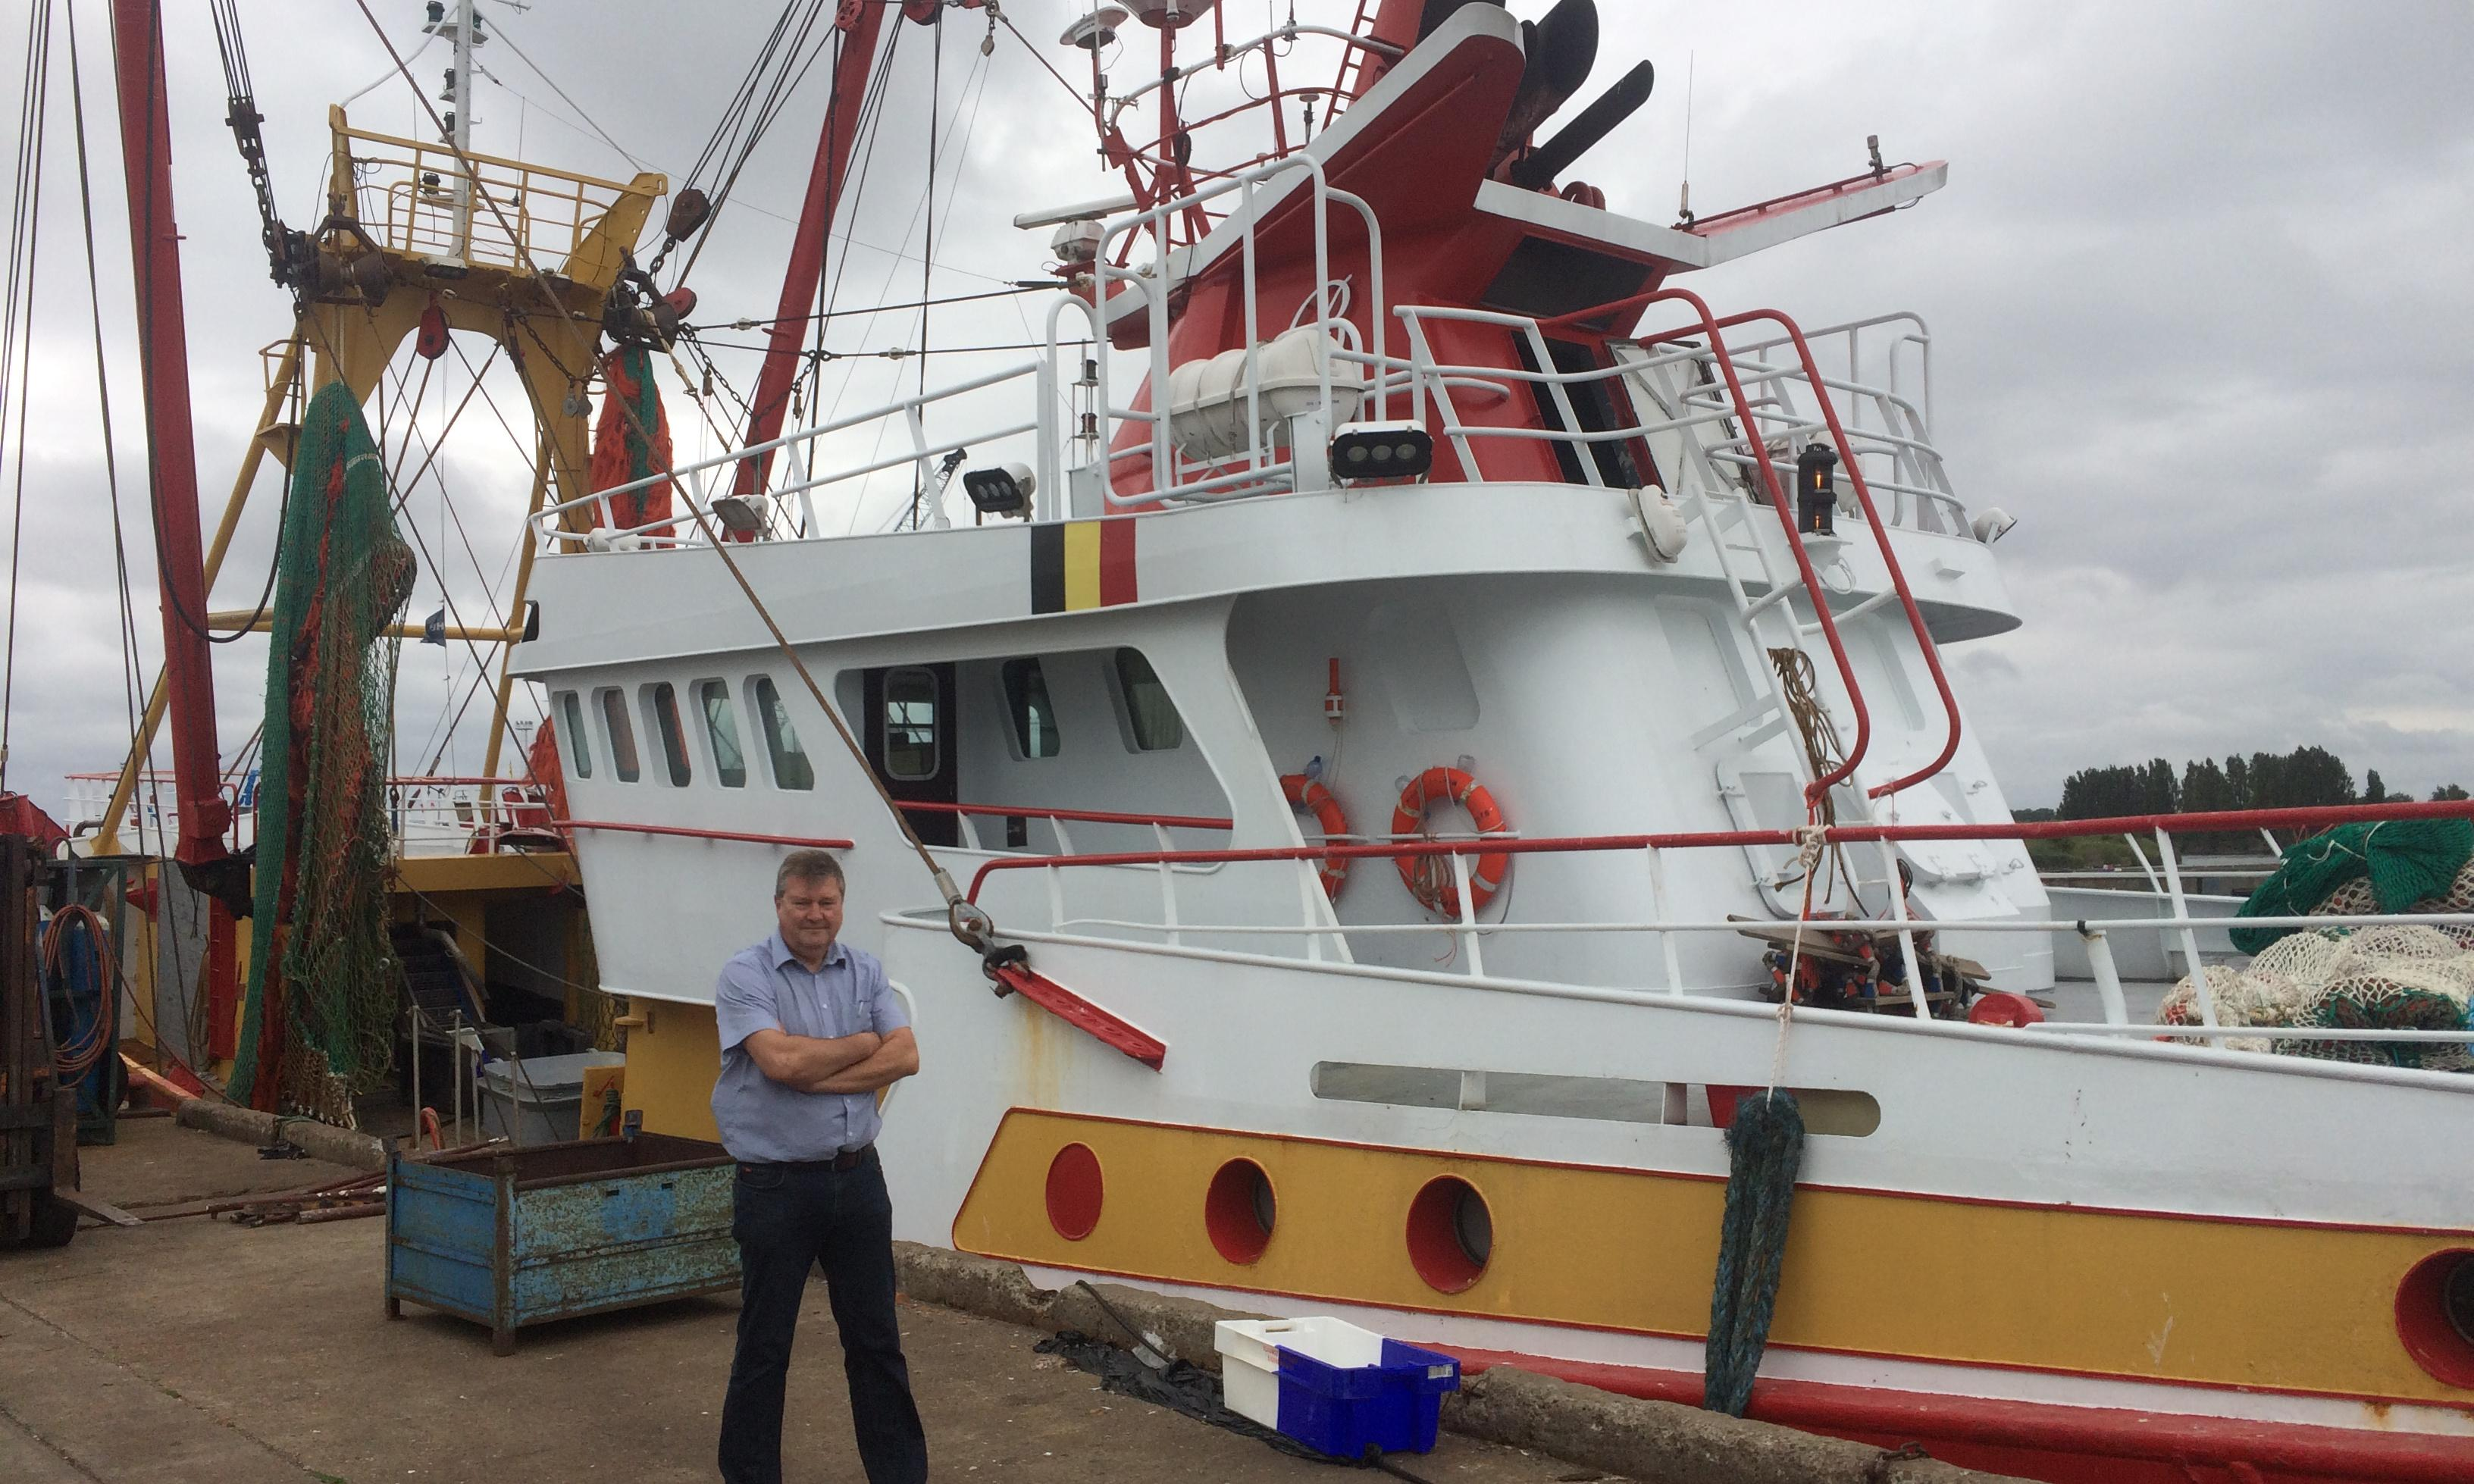 So long and thanks for the fish: EU trawlers set new course post-Brexit